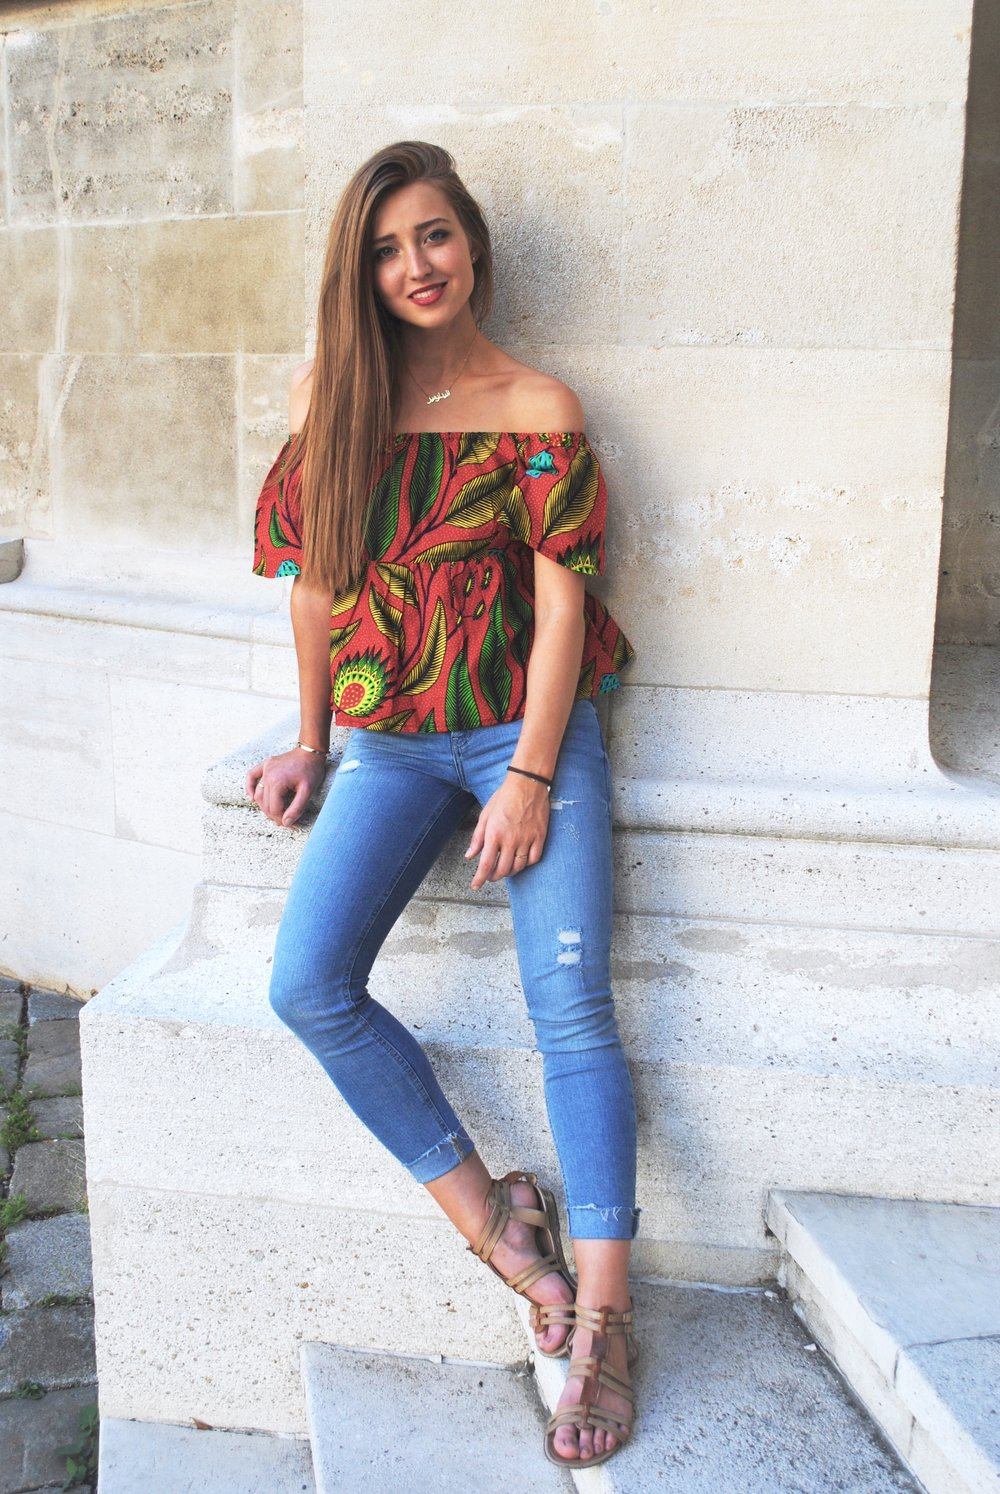 Isn't this top just gorgeous? LOVE the bright colors & cut!